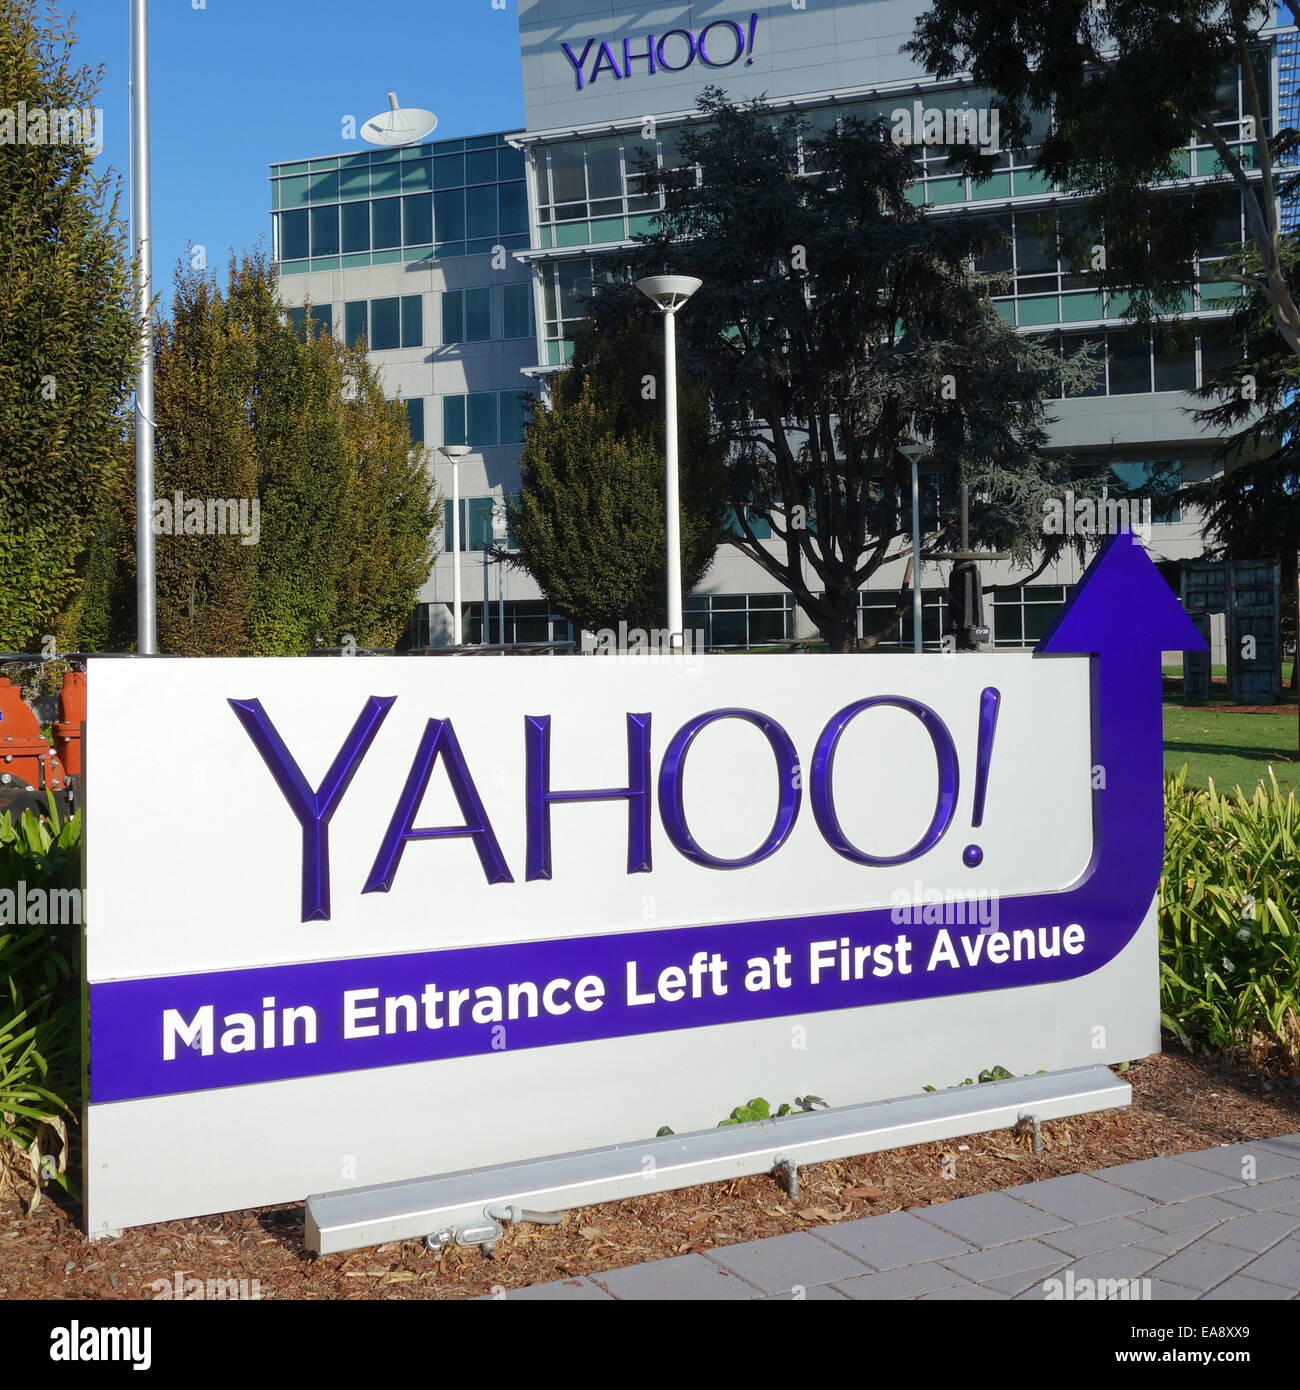 Yahoo Corporate Offices and Headquarters in Sunnyvale, California USA - Stock Image